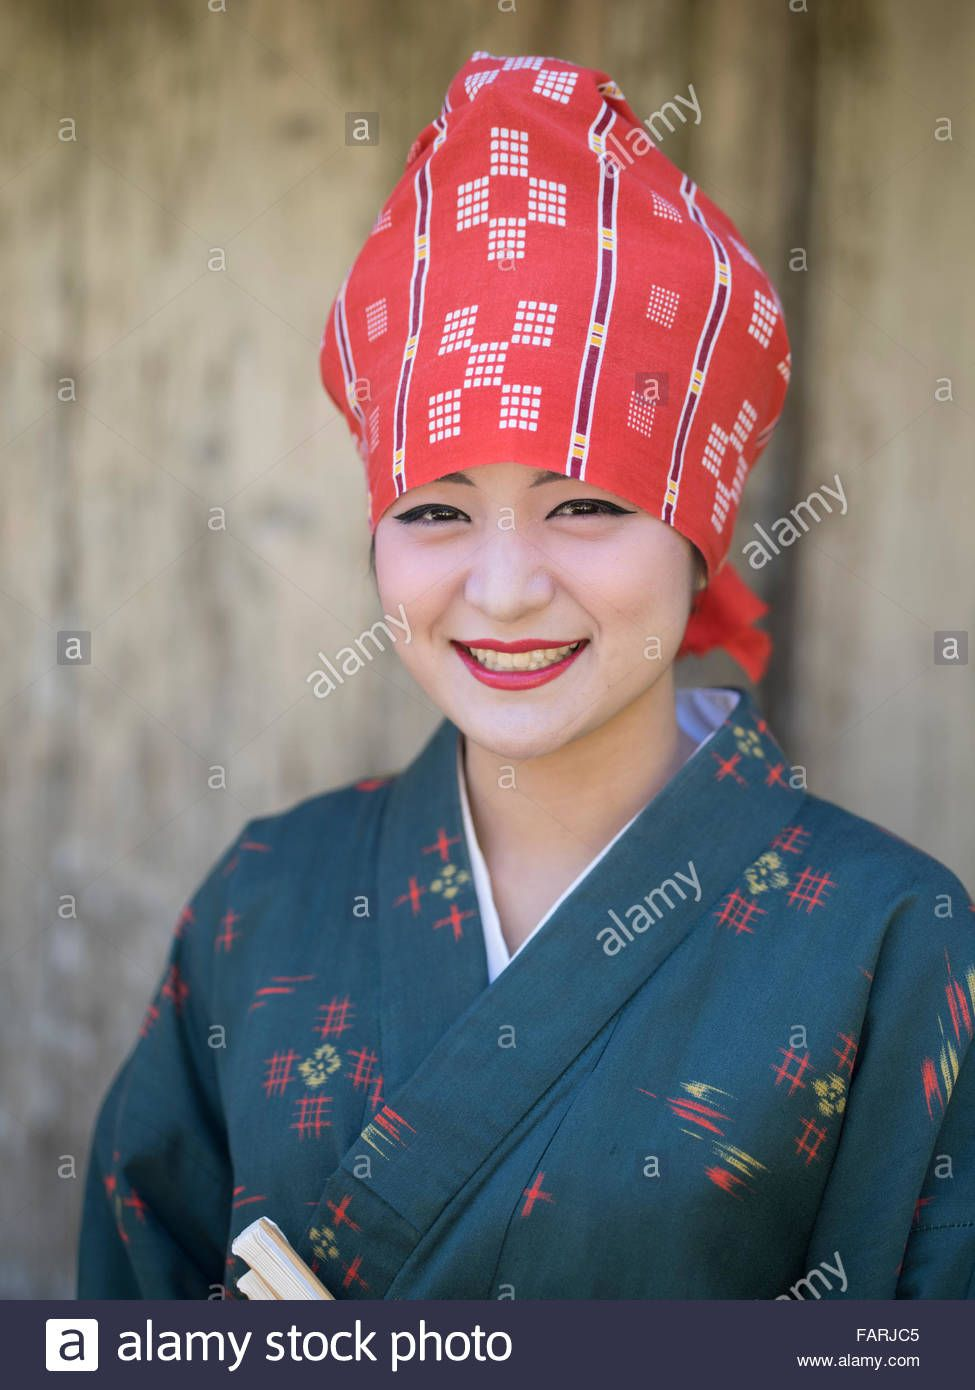 Download This Stock Image Okinawan Woman In Traditional